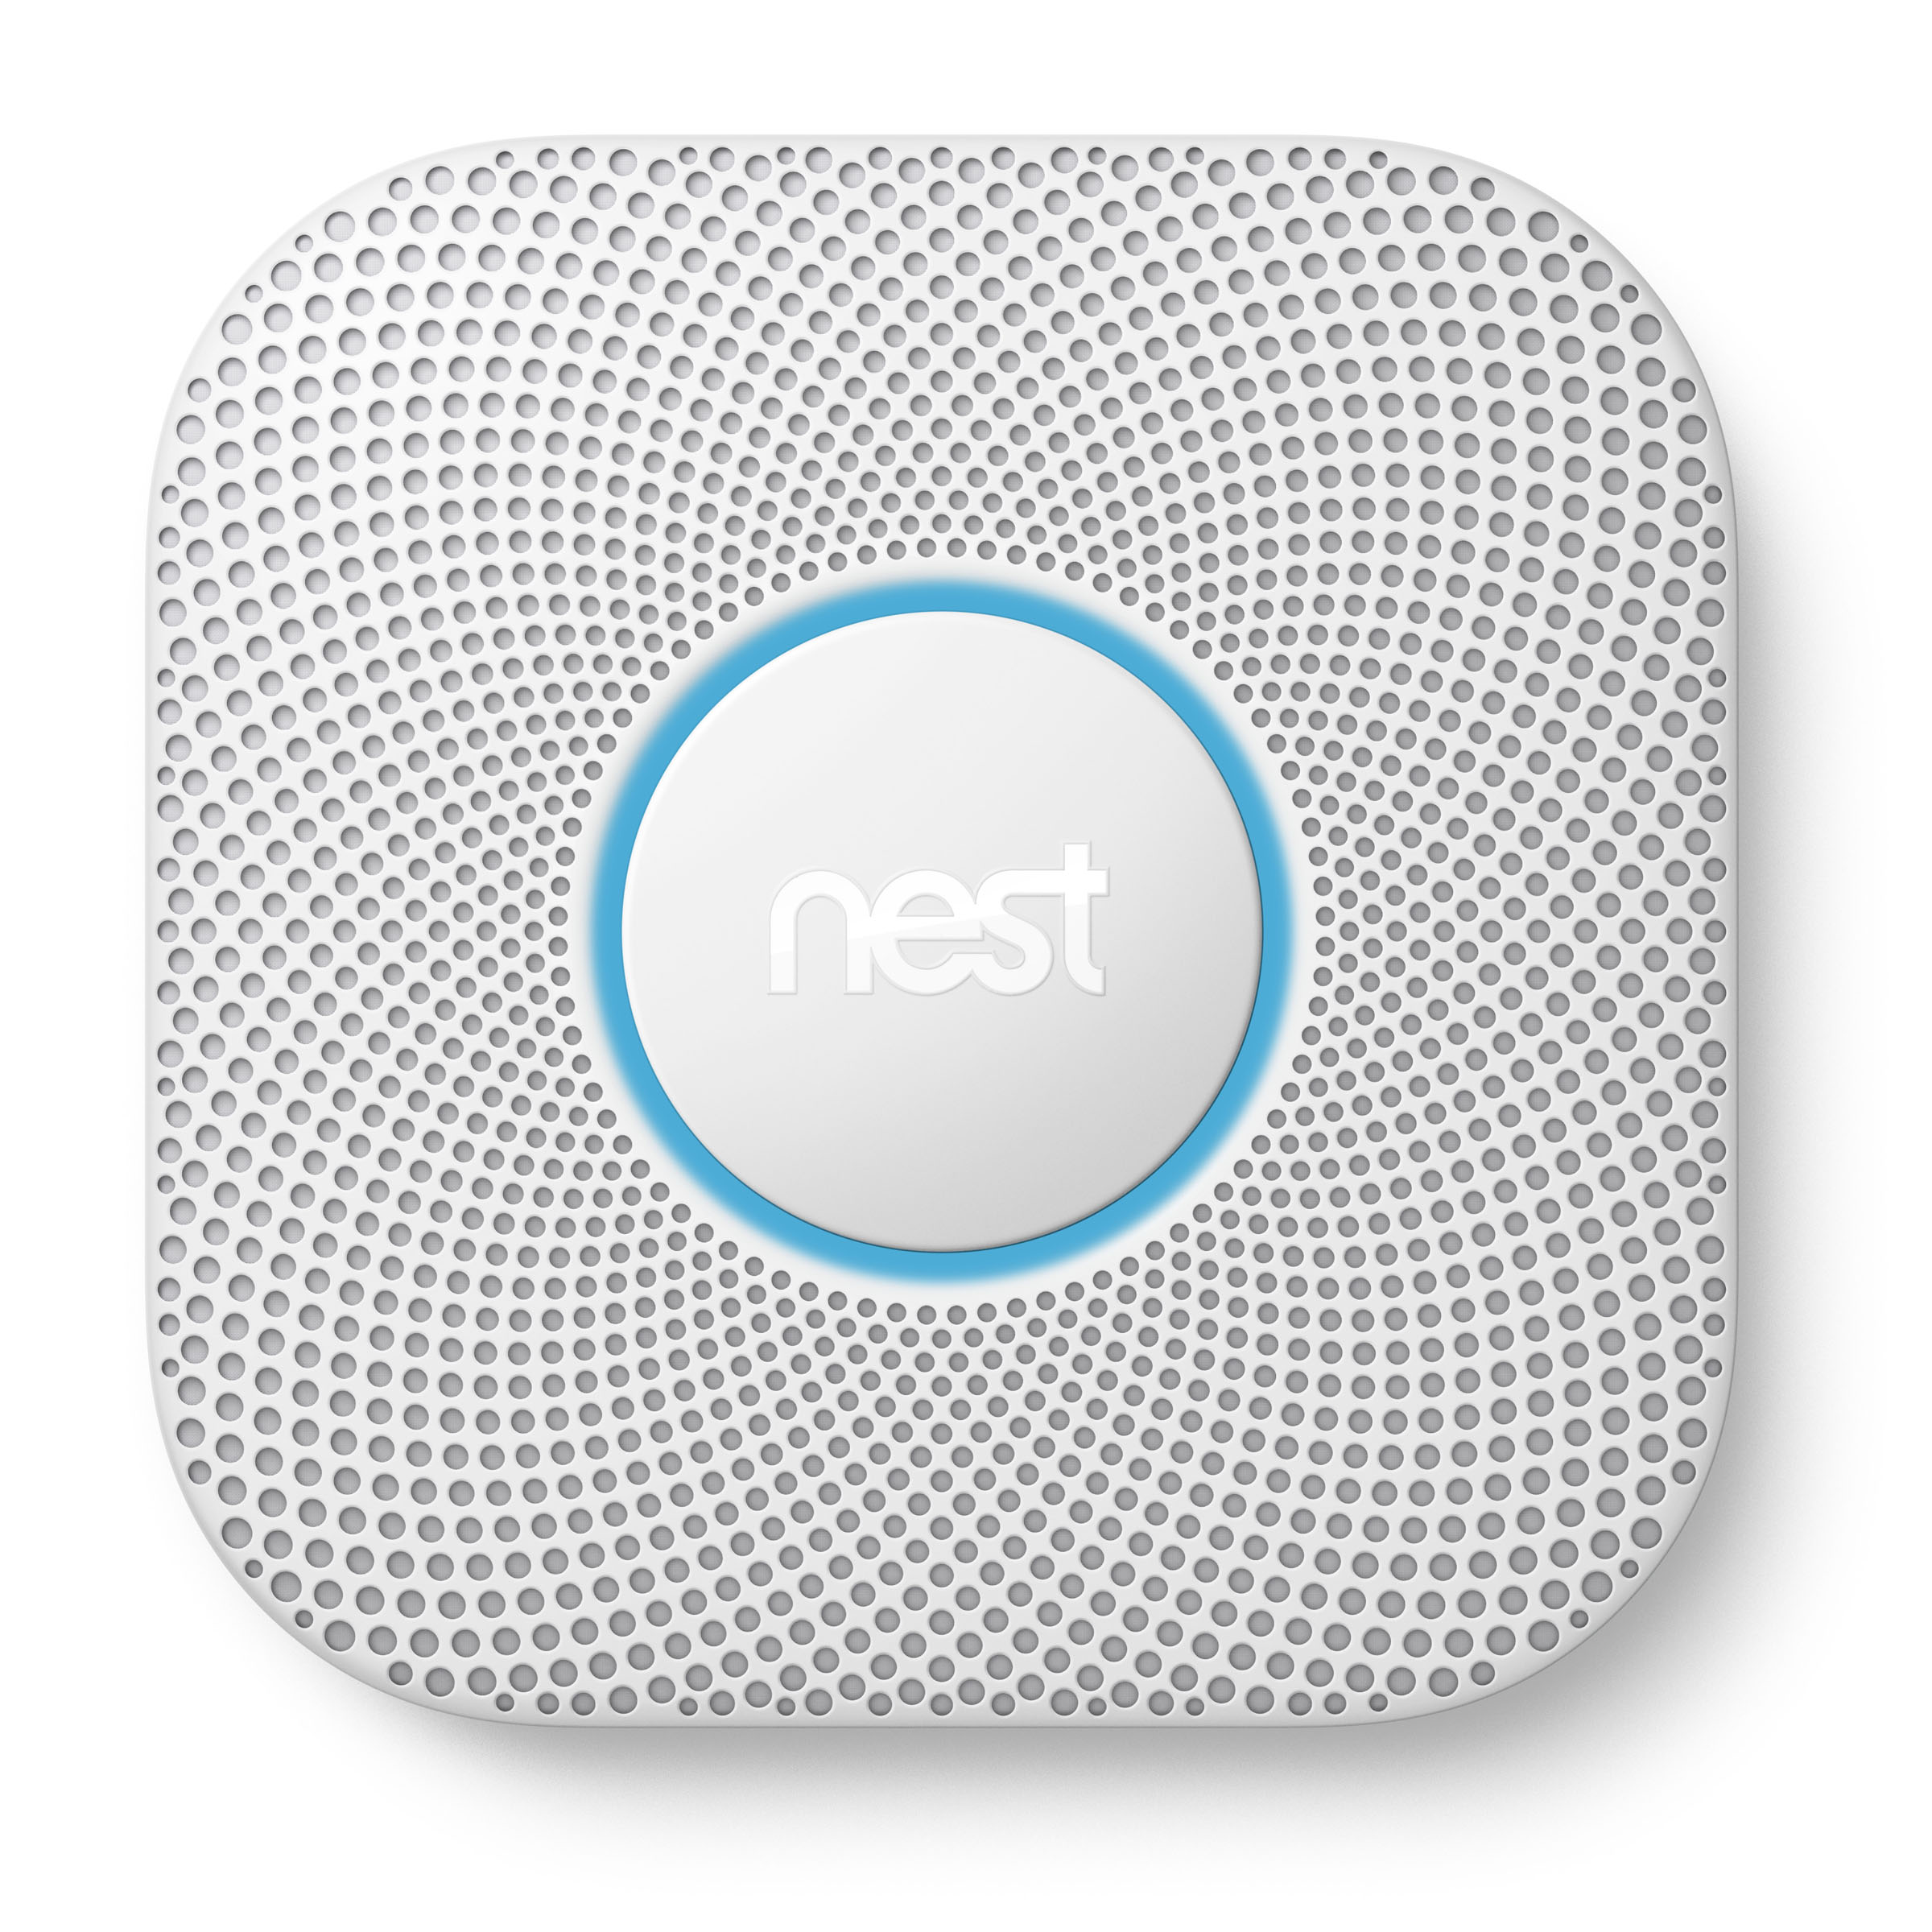 Image for Nest Protect - 2nd Generation smoke + CO alarm - Wired with Device Setup from Circuit City